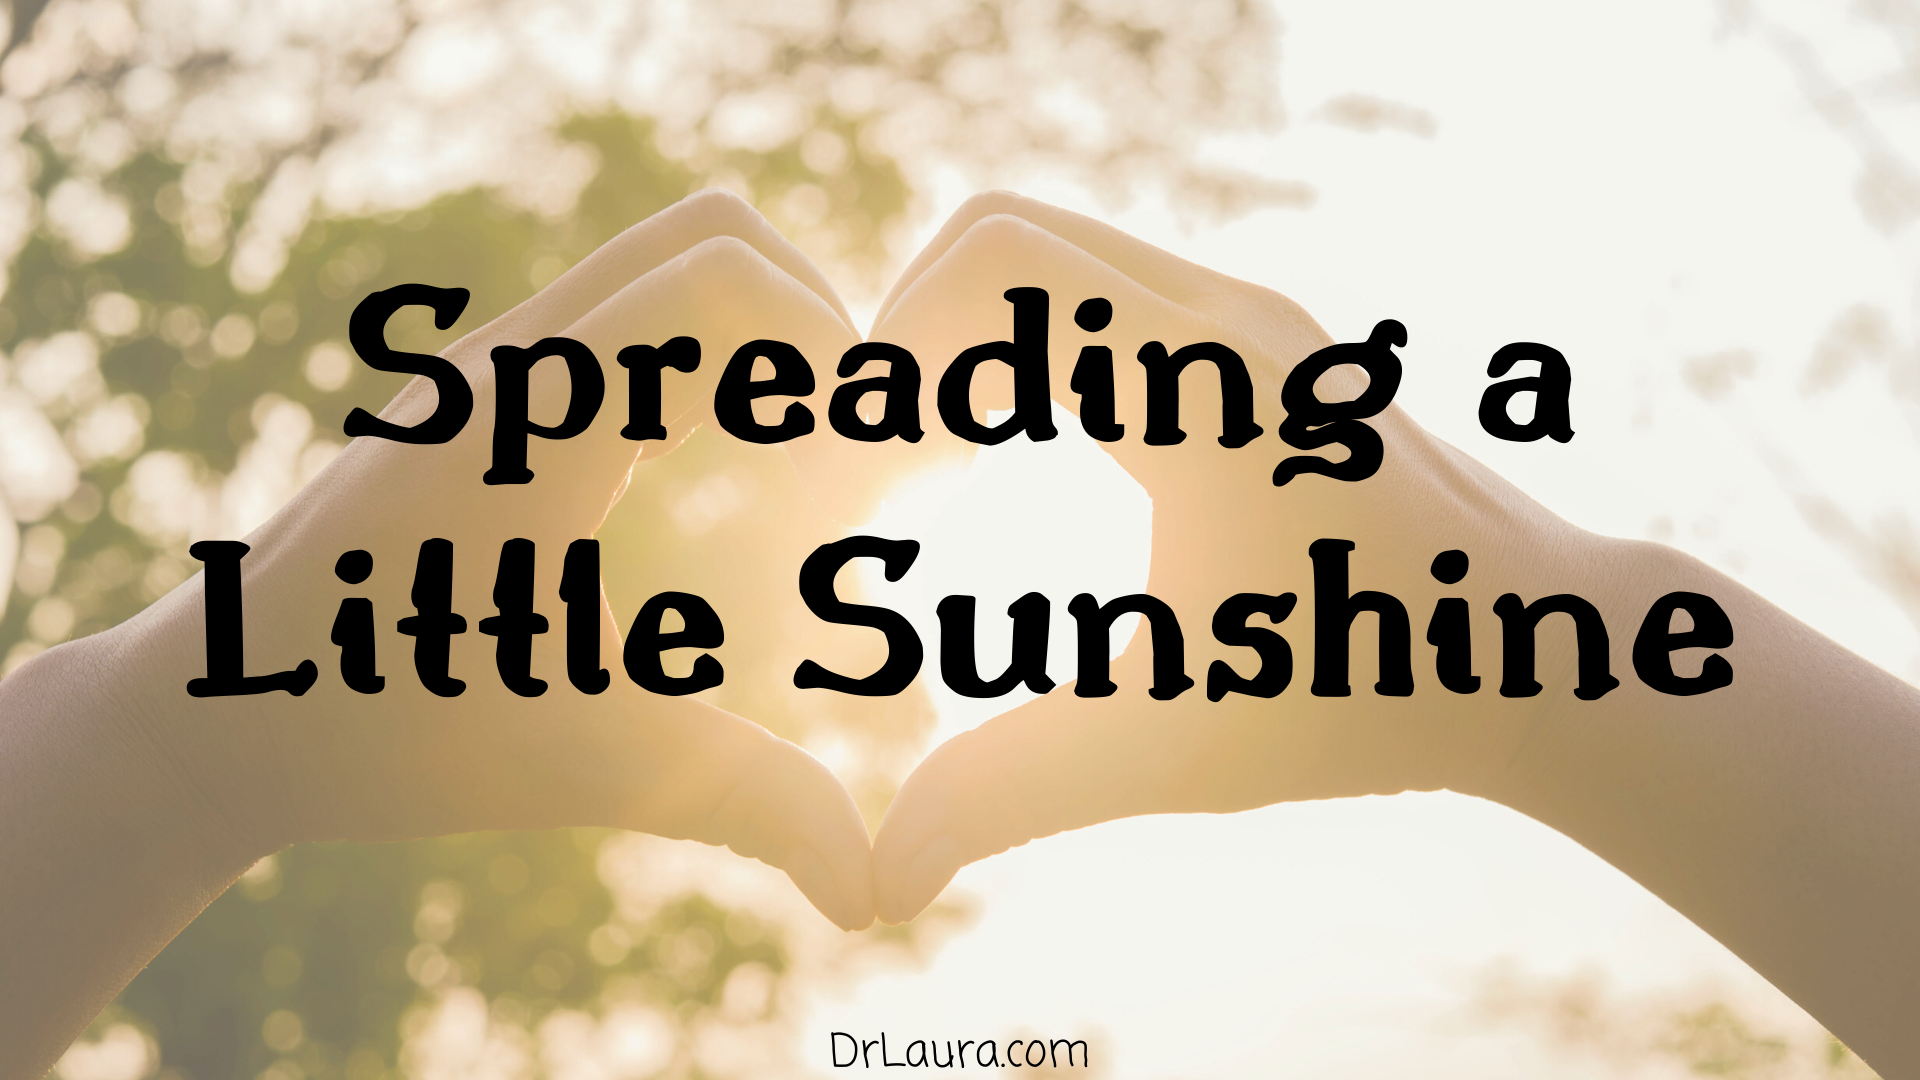 Email of the Day: Spreading a Little Sunshine